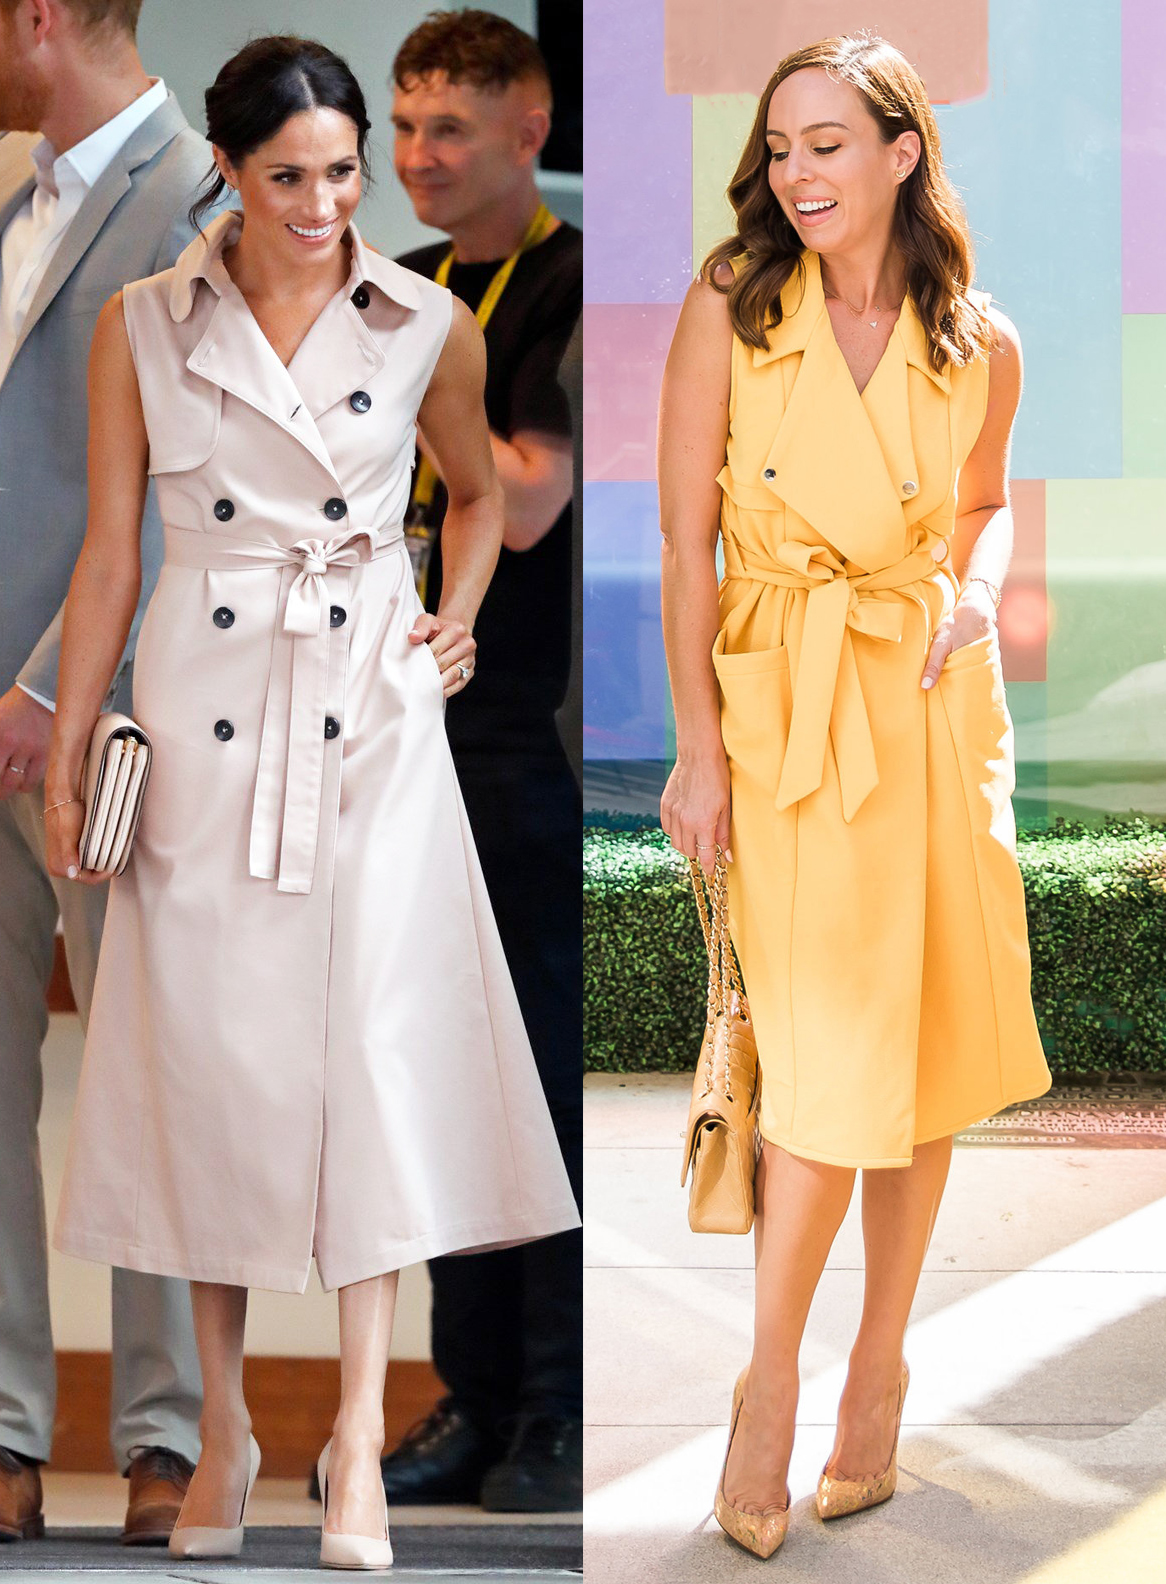 Sydne Style shows how to get meghan markle fashion for less in sleeveless trench dress